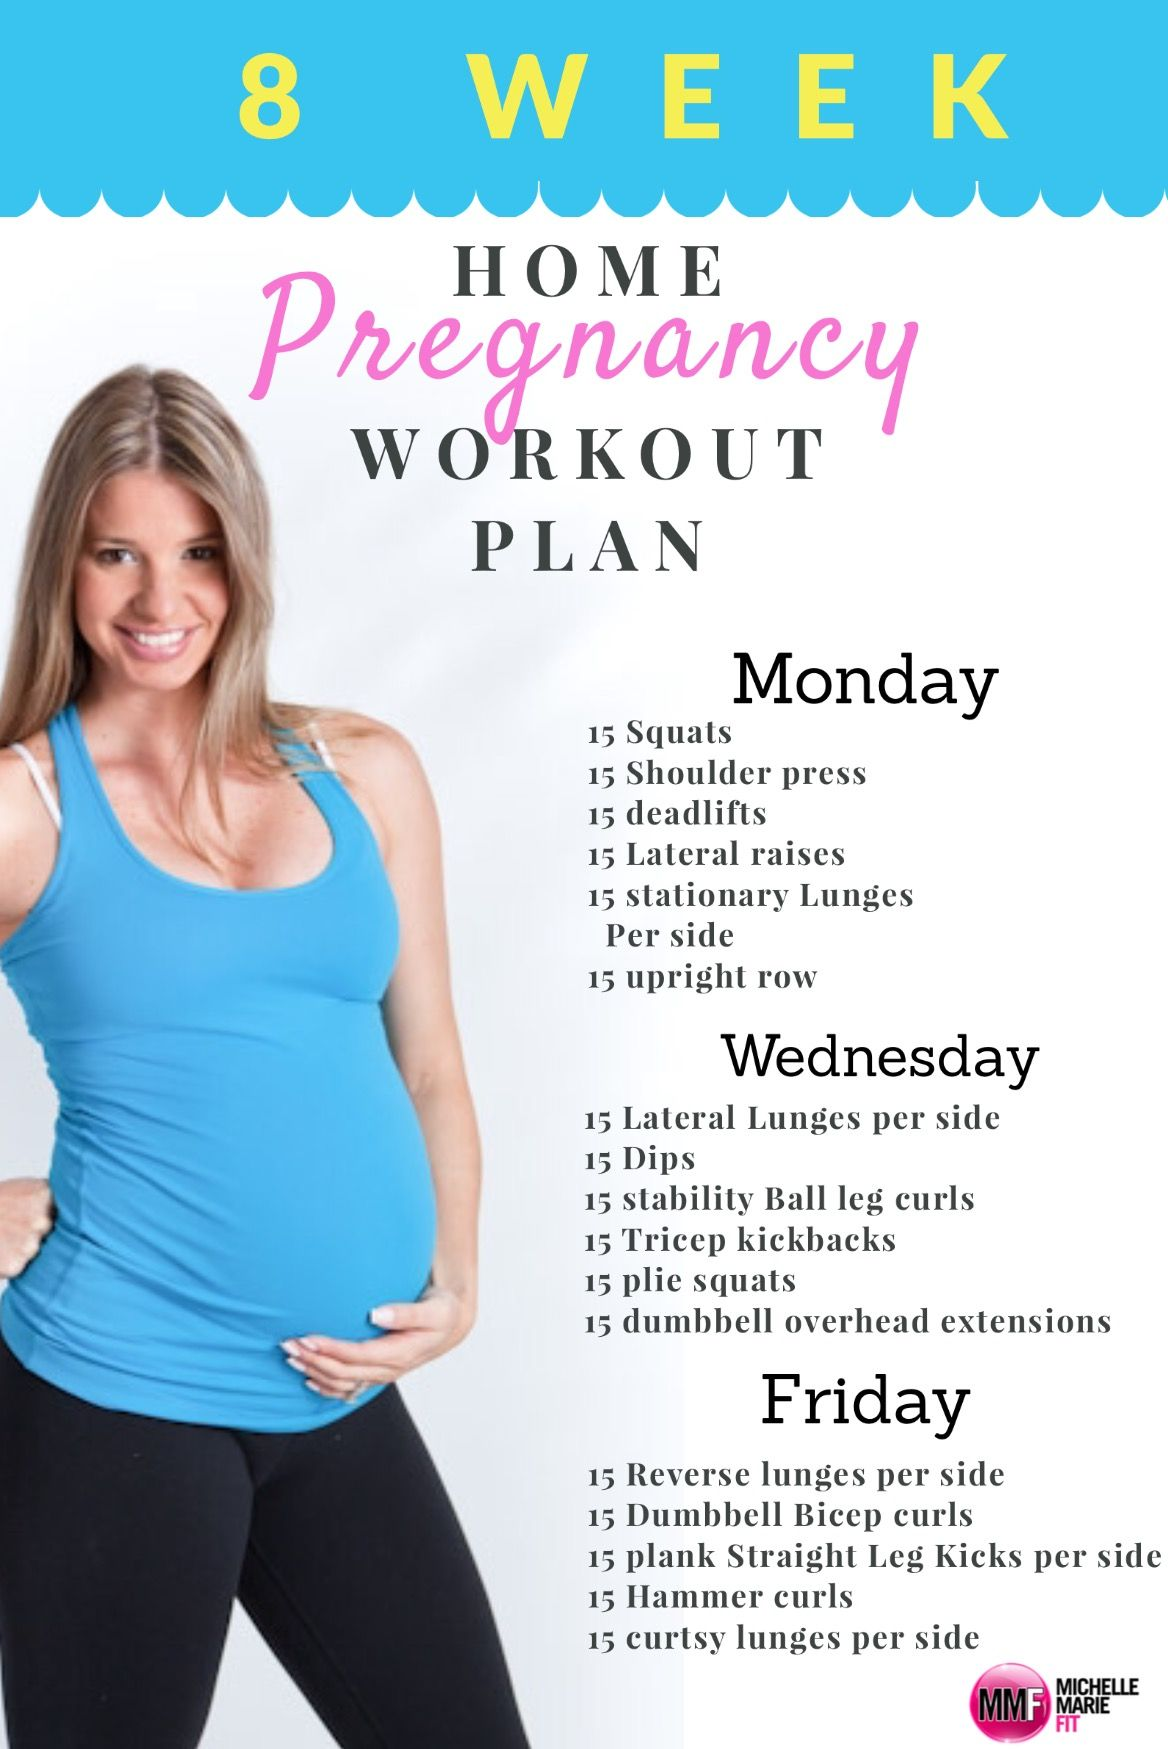 ac7589ca6b46b 8 Week Home Pregnancy Workout Plan. All exercises safe and using body  weight or dumbbells